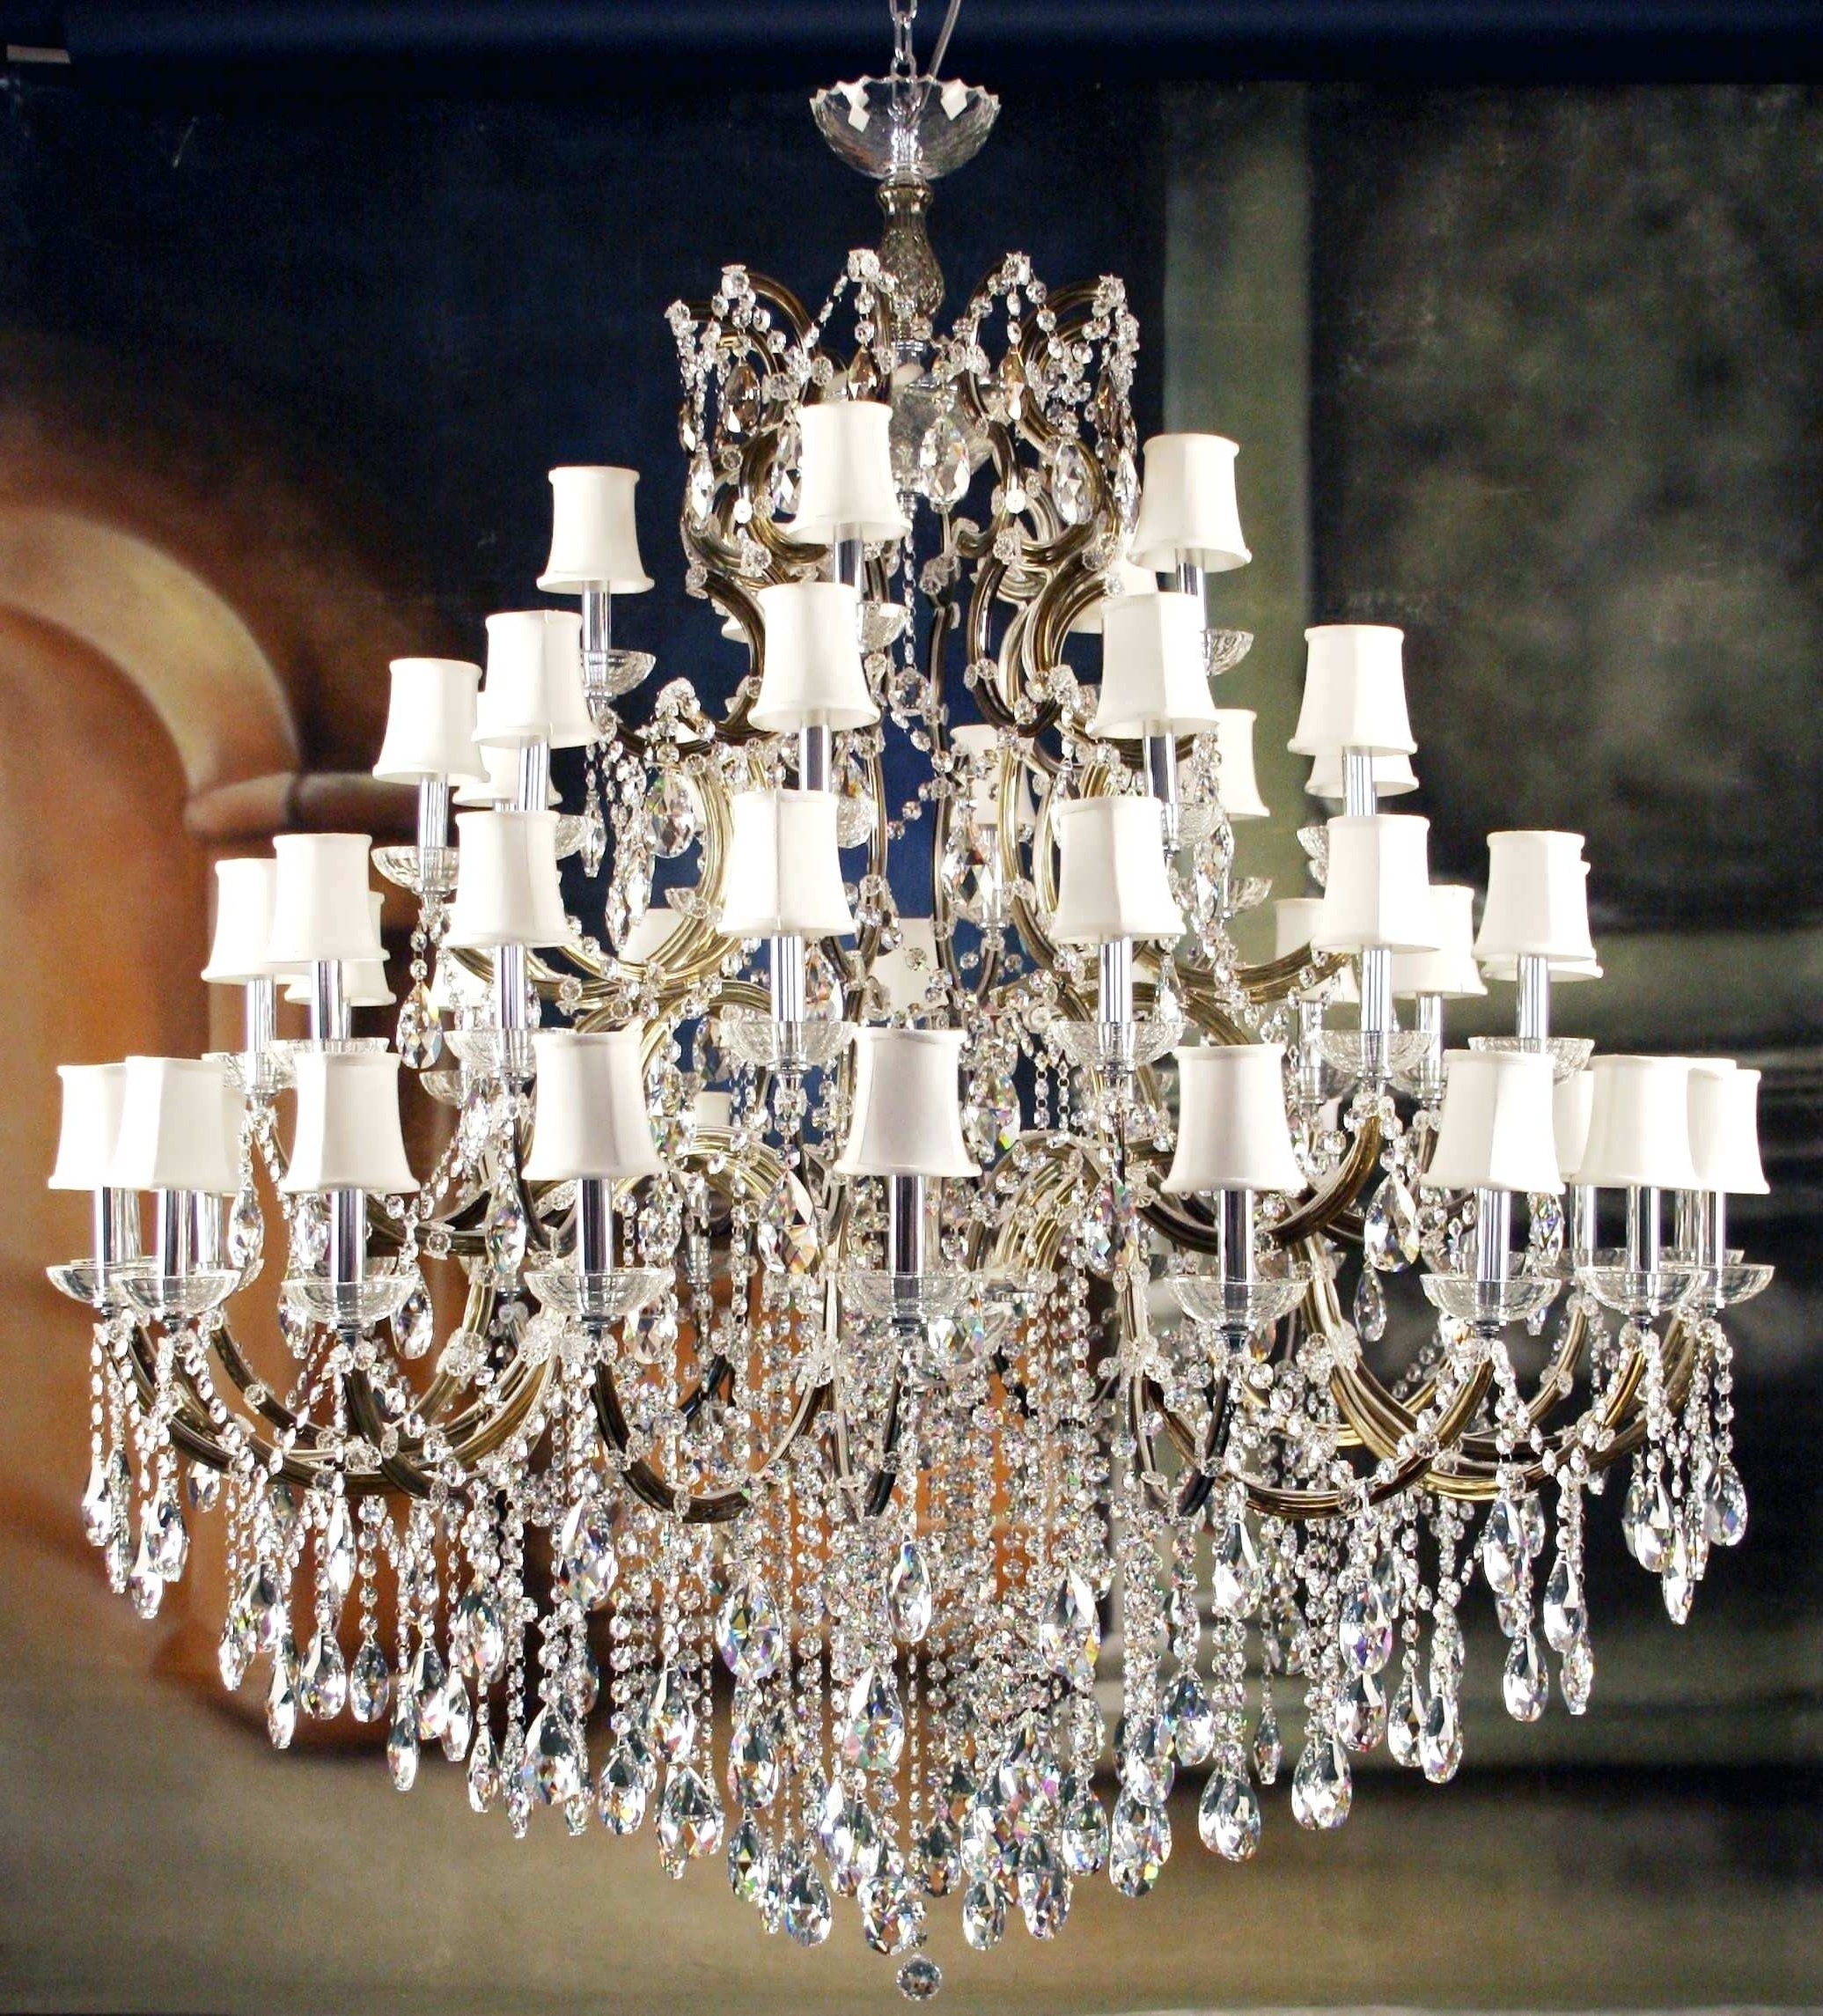 Chandeliers : Costco Chandelier Luxury Creactividadfo Page 45 Regarding 2019 Costco Lighting Chandeliers (View 14 of 20)